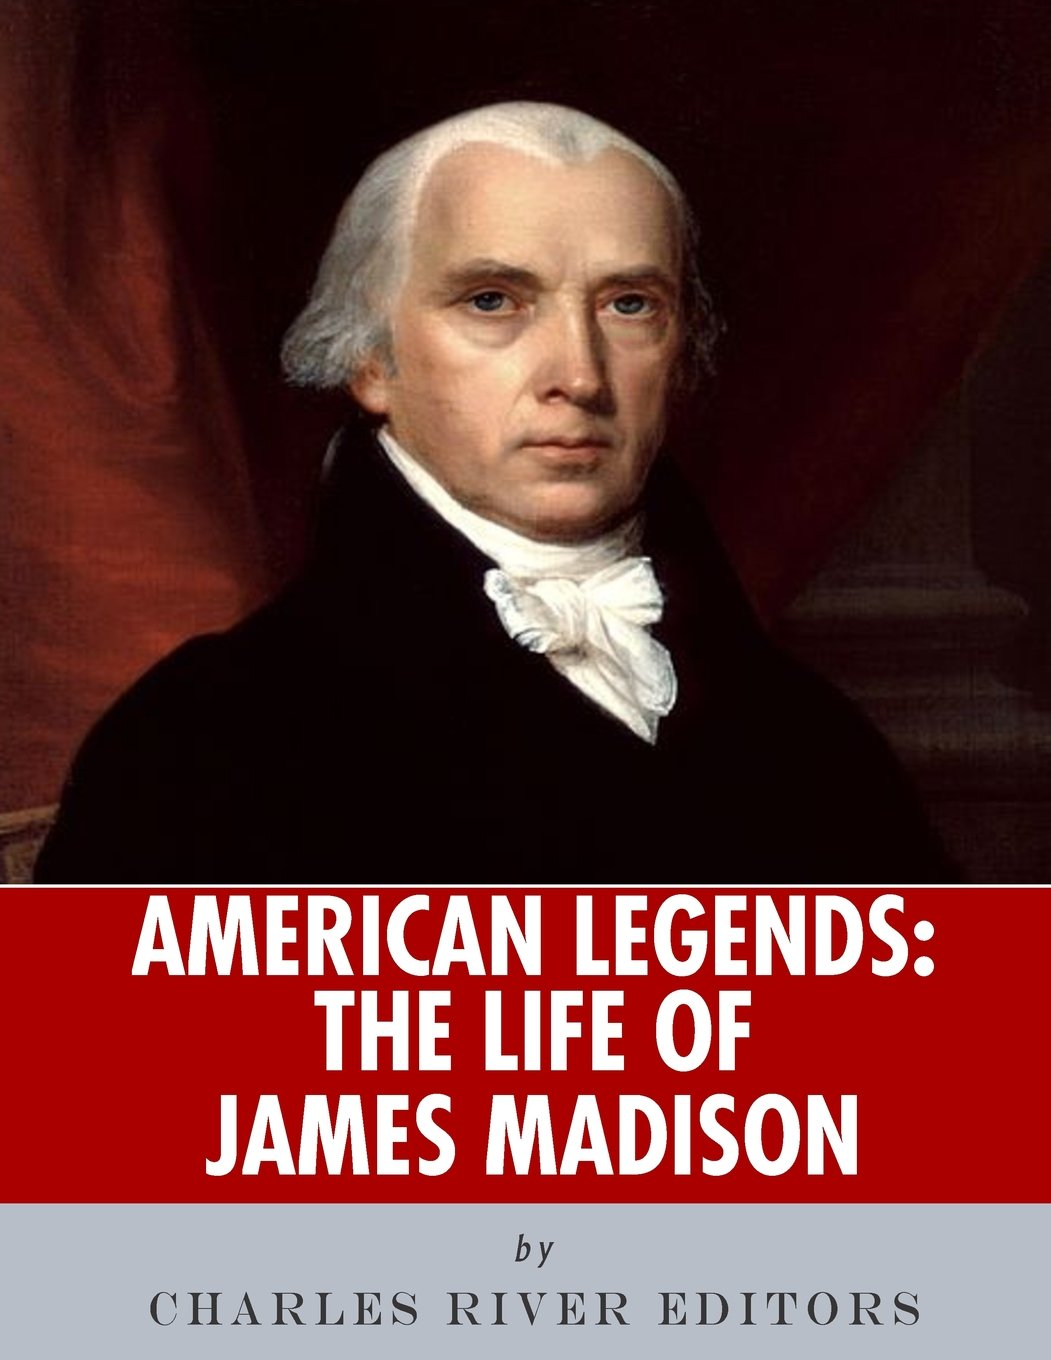 American Legends: The Life of James Madison pdf